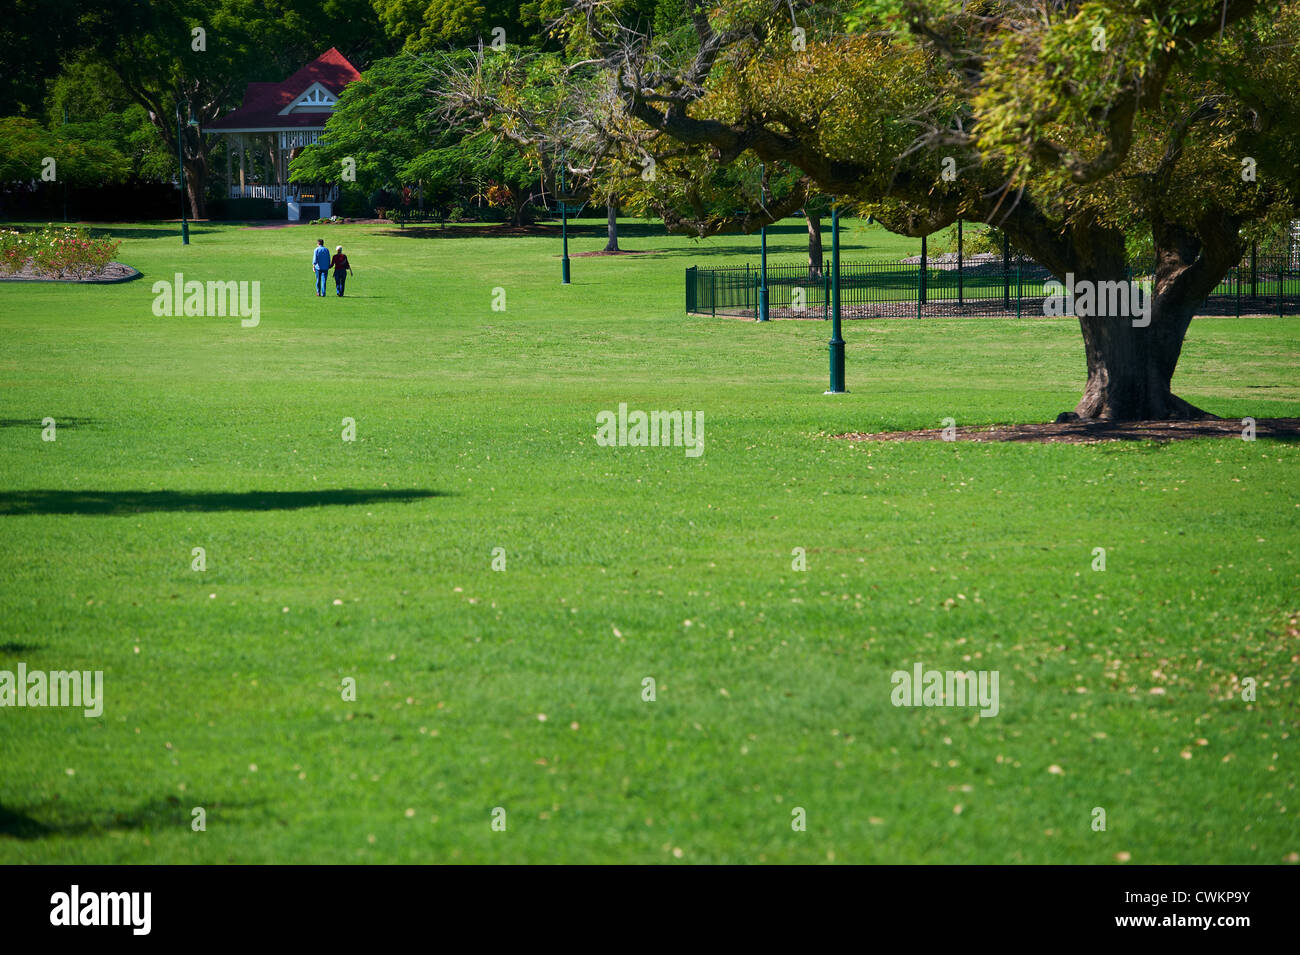 New Farm Park, Brisbane Queensland Australia - Stock Image